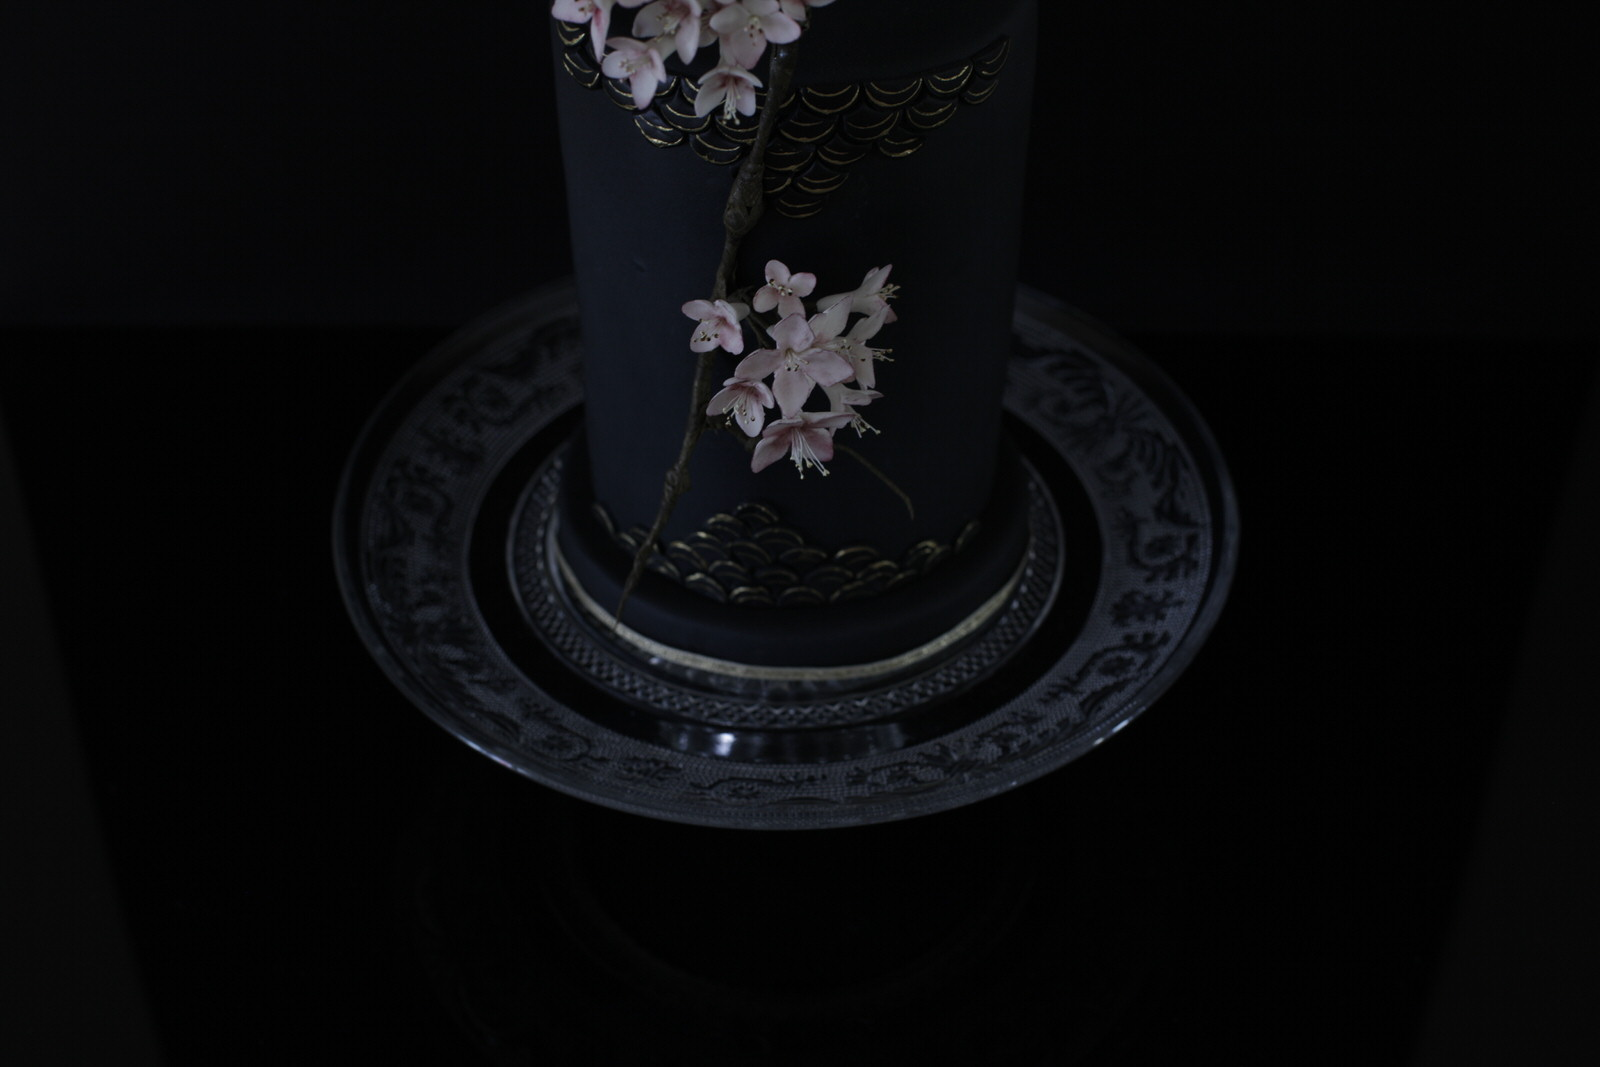 Sakura wedding cake